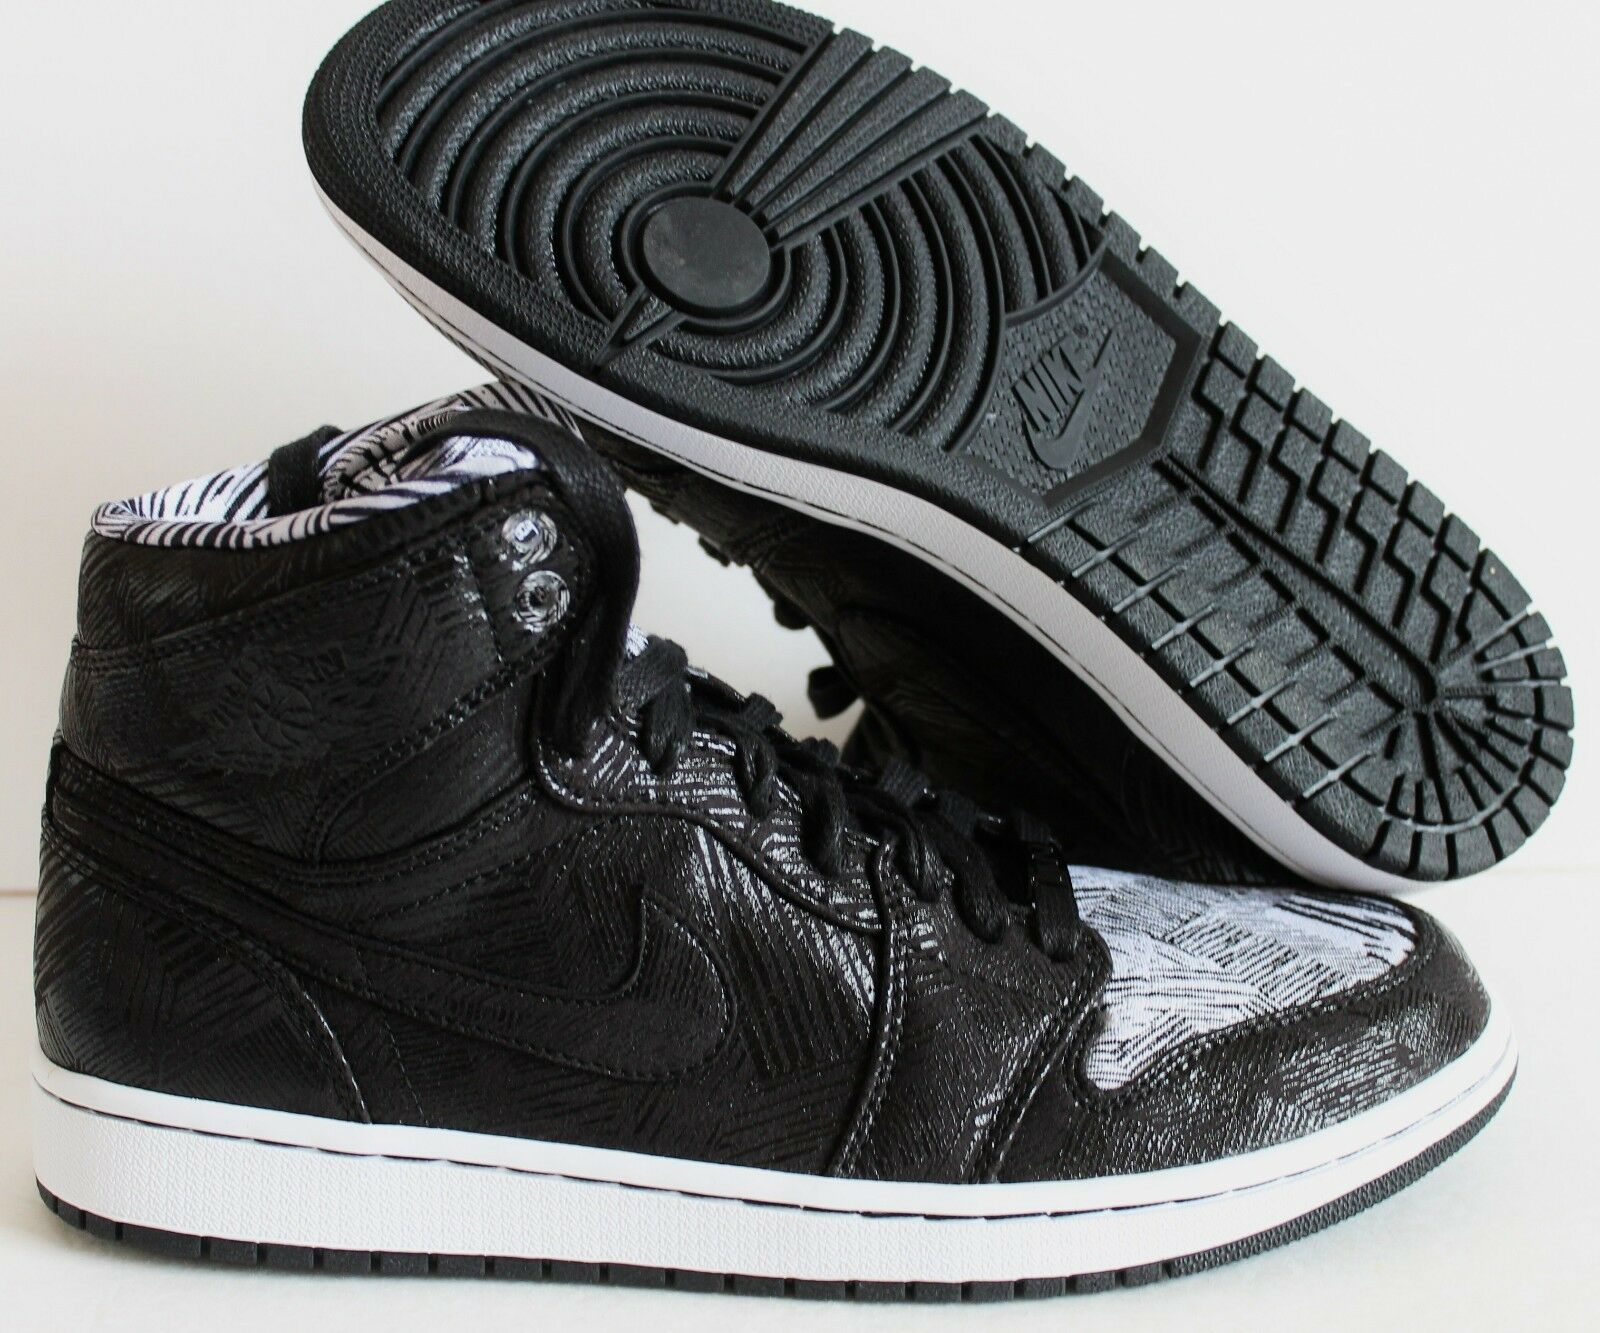 AIR JORDAN 1 RETRO HIGH BHM BLACK HISTORY MONTH SZ 8  [579591-010]